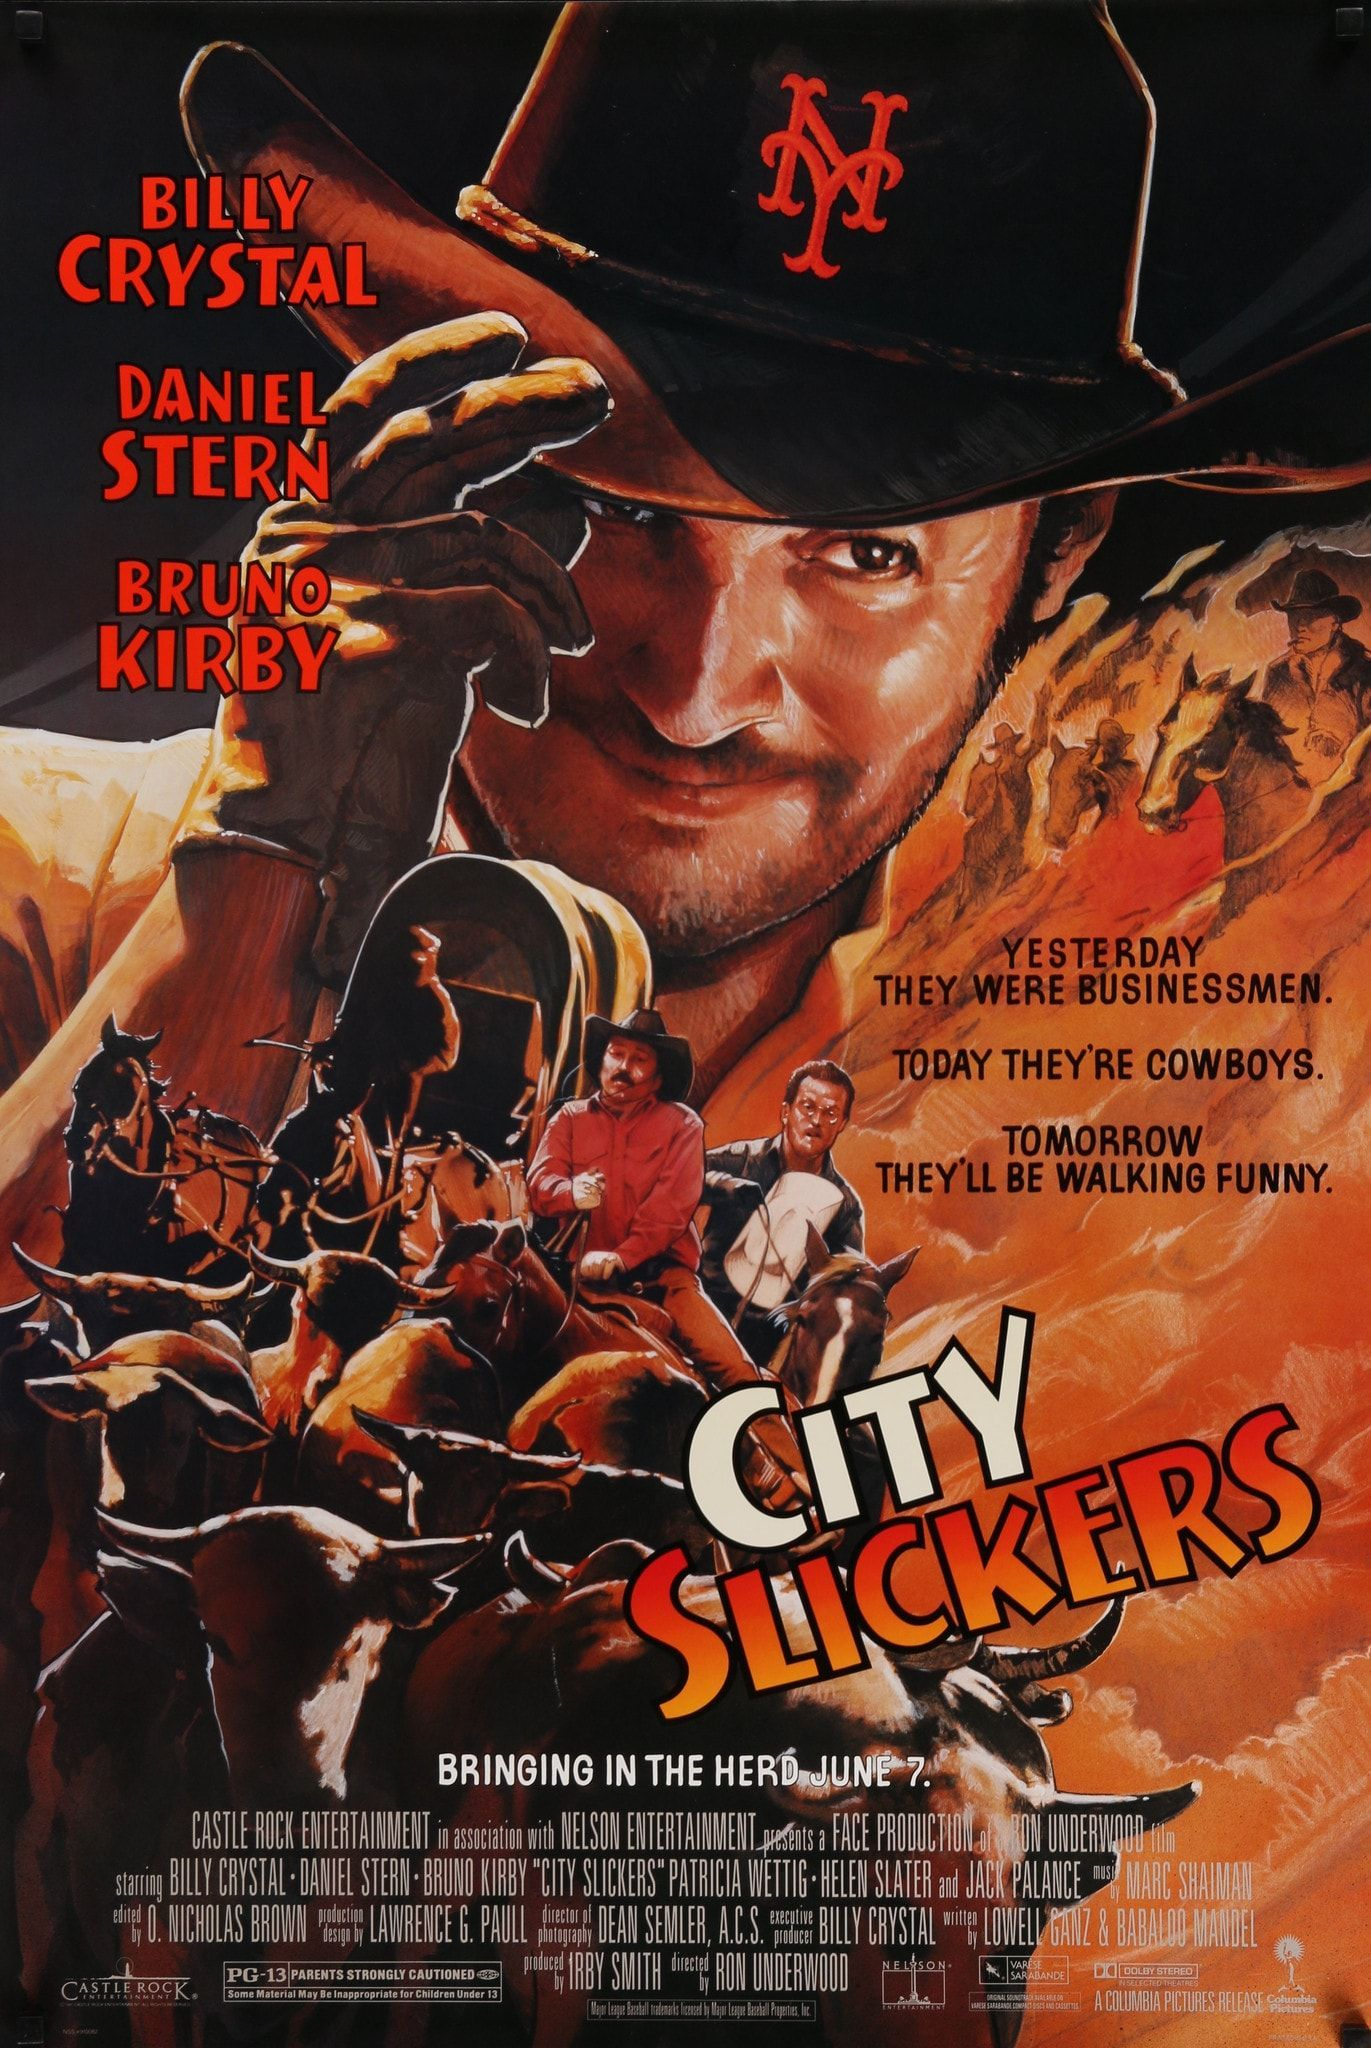 Film City Slickers 1991 Year Poster Printed 1991 Country Usa Size 27 X 40 Artist John Alv City Slickers Original Movie Posters Movie Posters